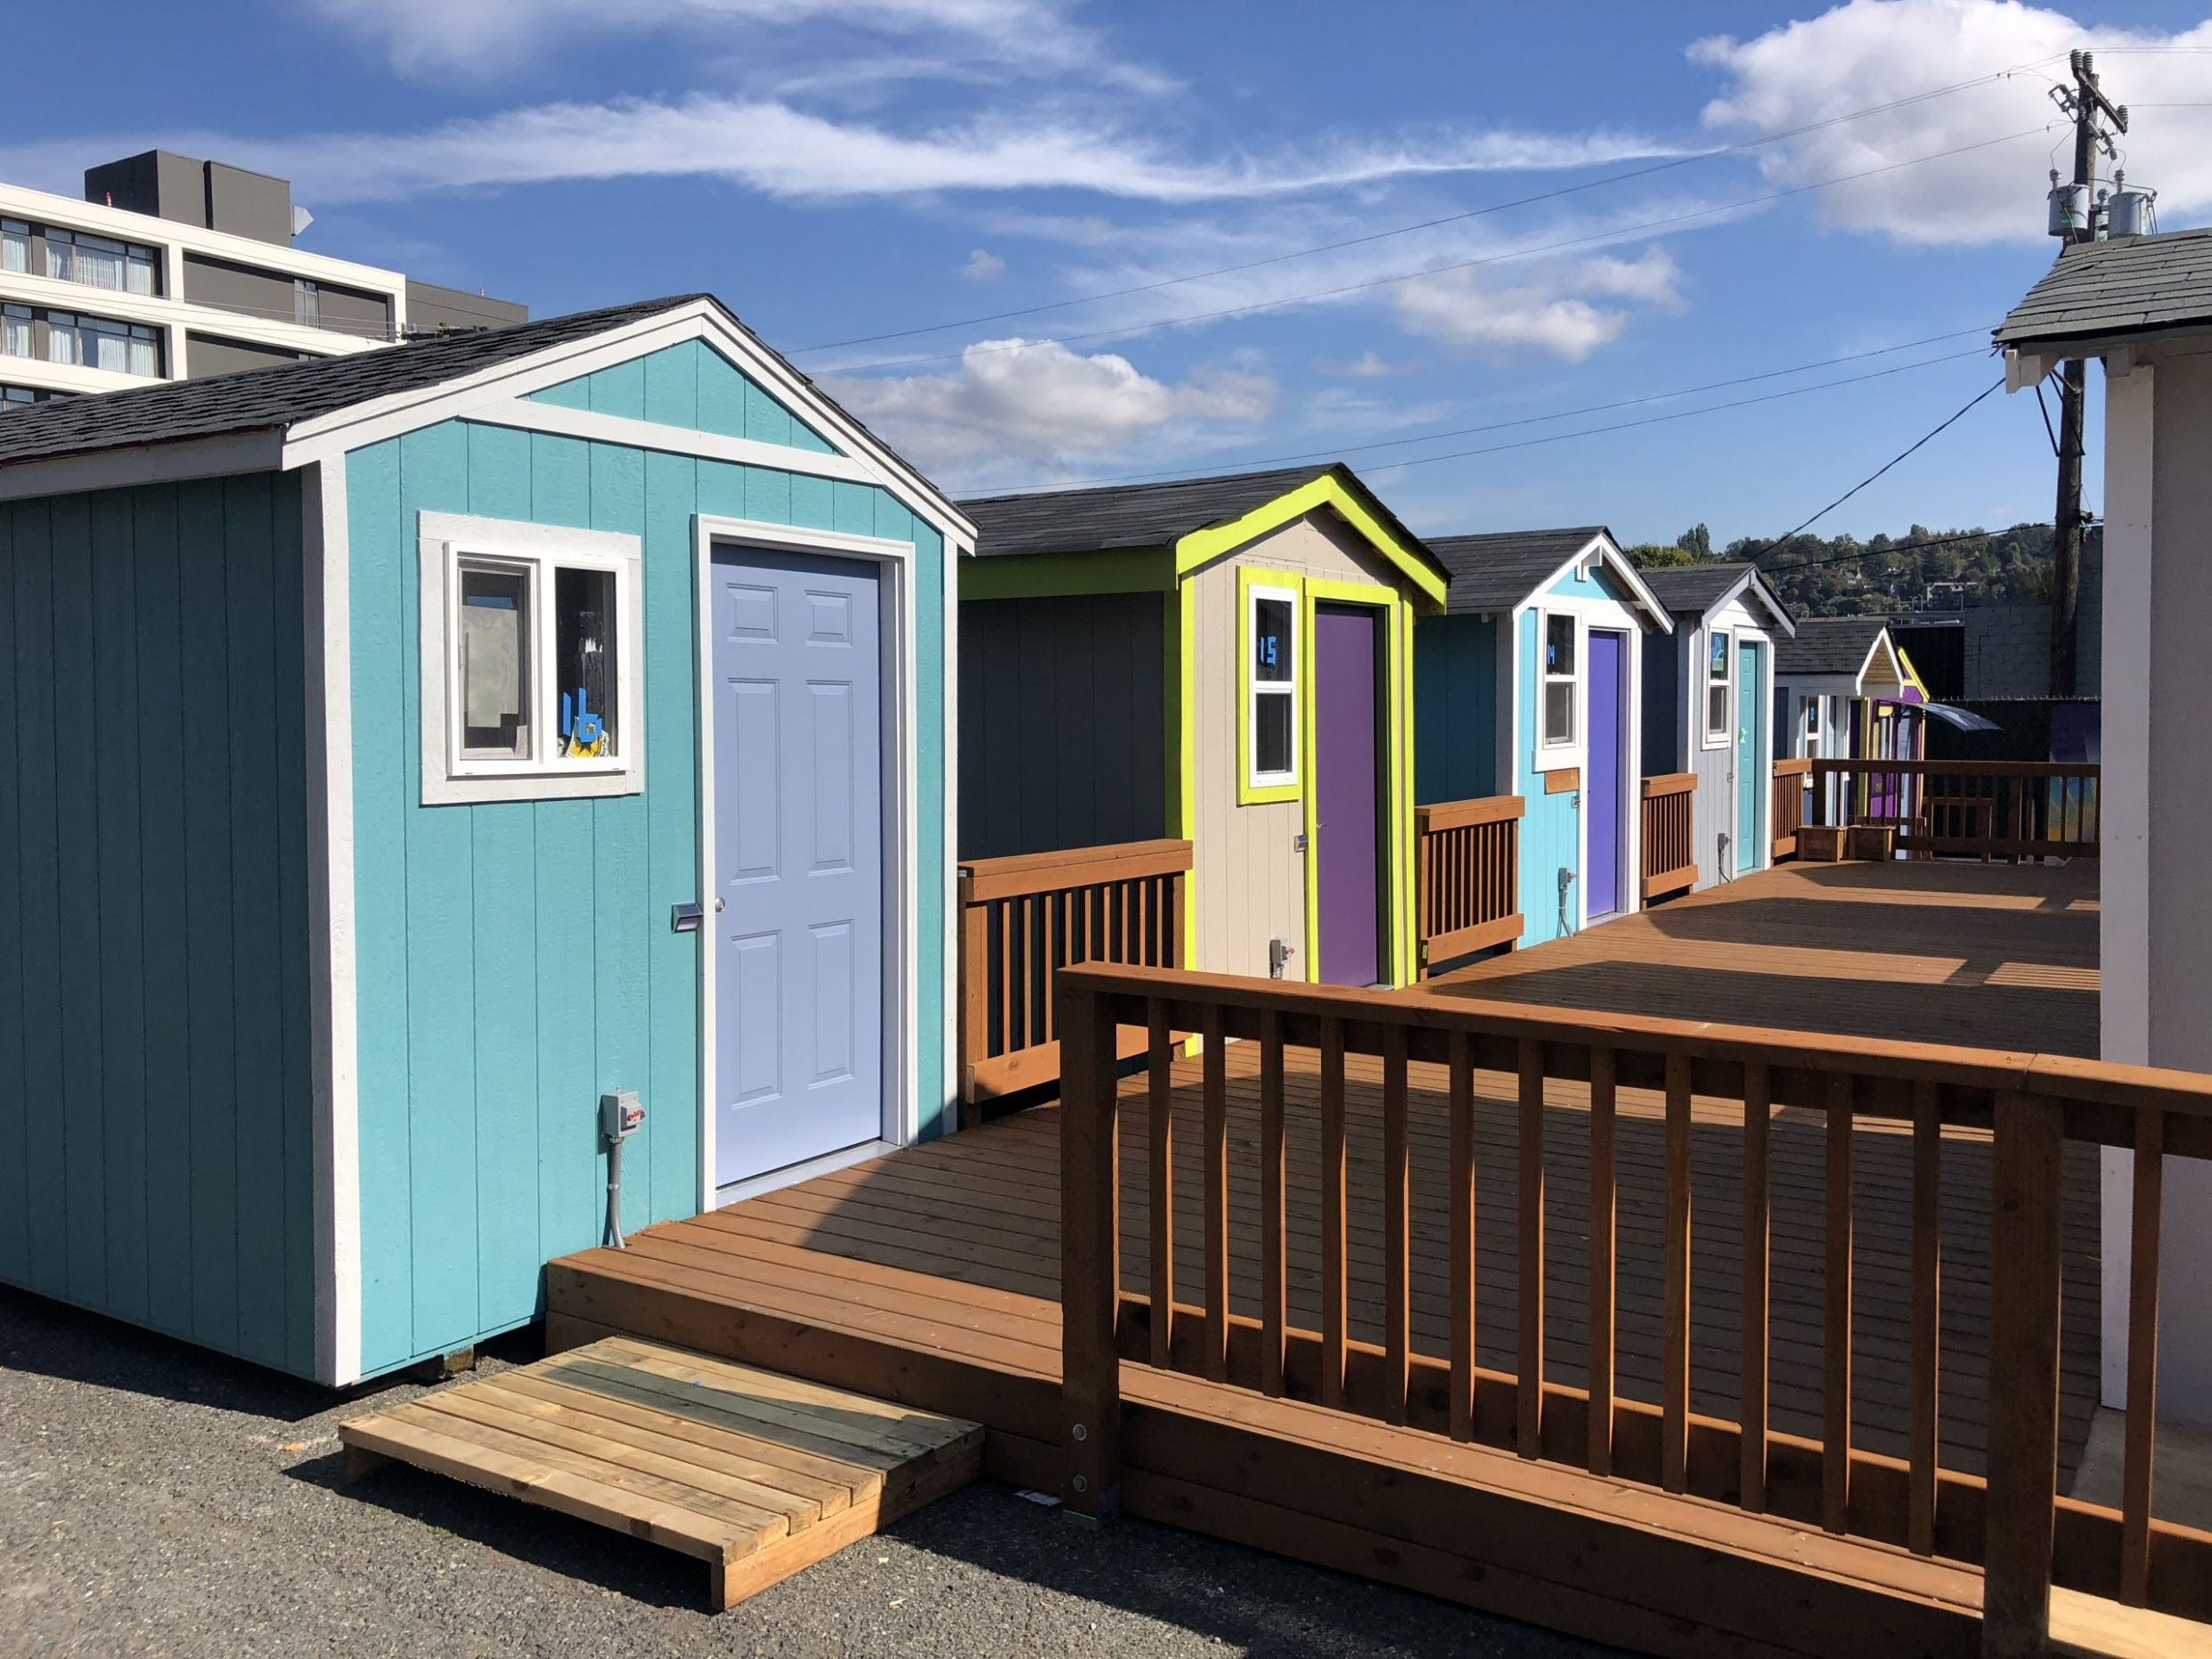 Tiny House Villages in Seattle: An Efficient Response to Our ..